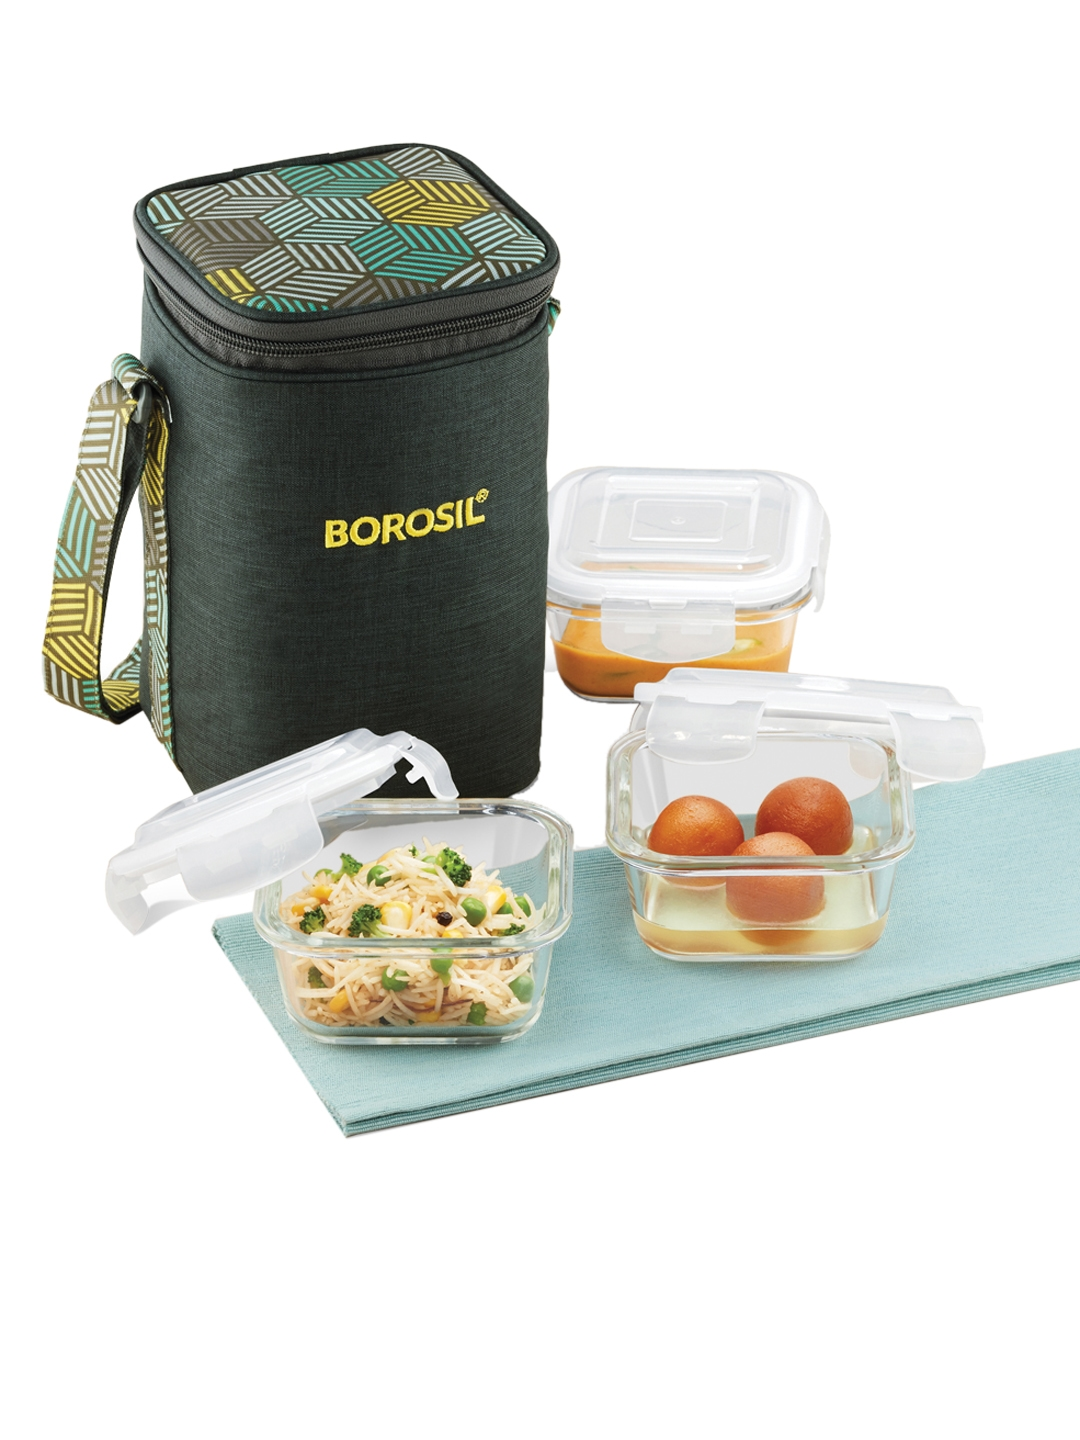 BOROSIL Olive Green   White Solid Foodluck Borosilicate Glass Microwavable 3 Square Containers Lunch Box With Bag